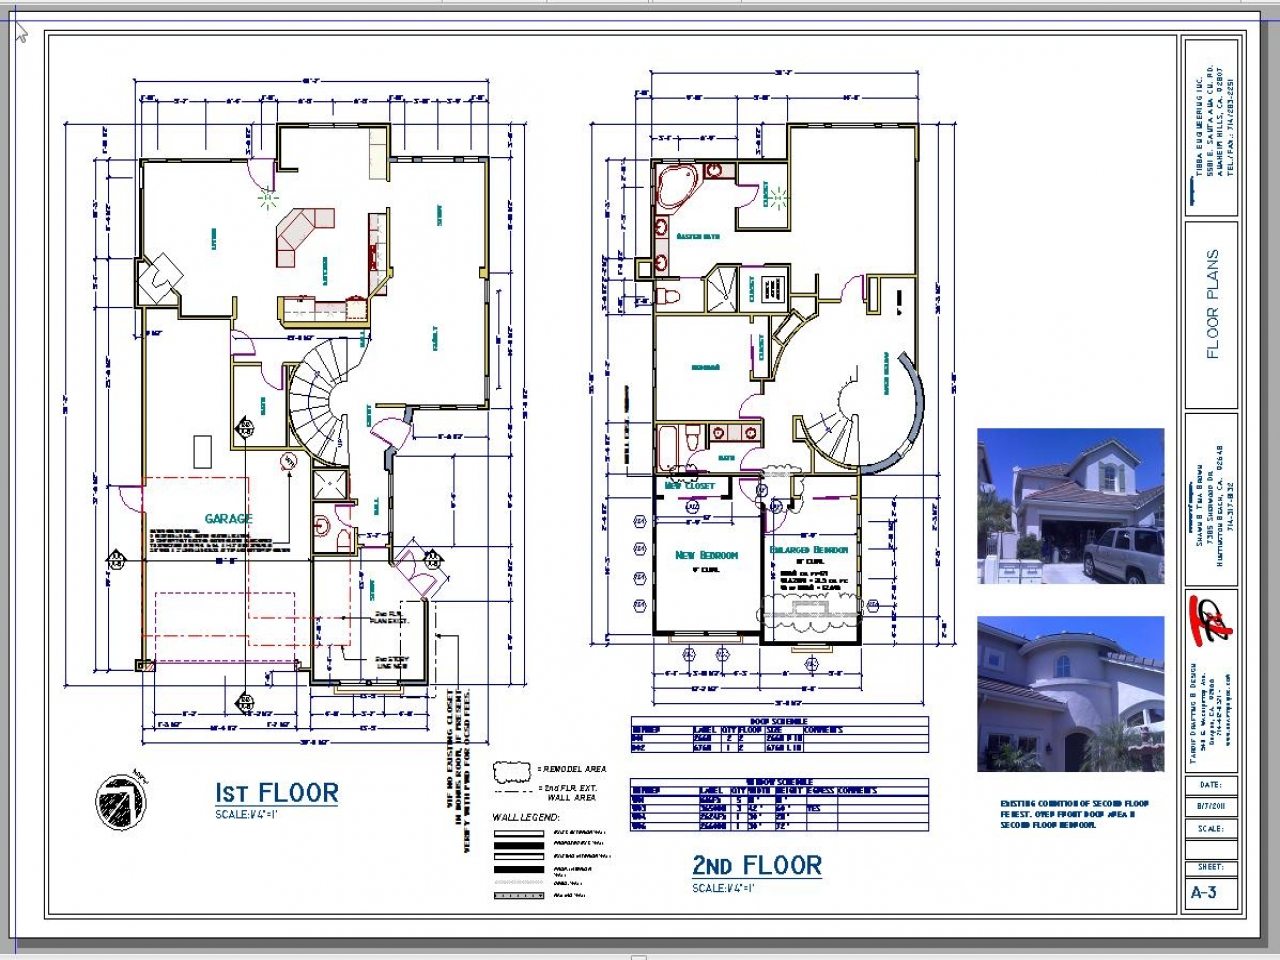 Listing software experience on resume home layout design for Free building layout design software